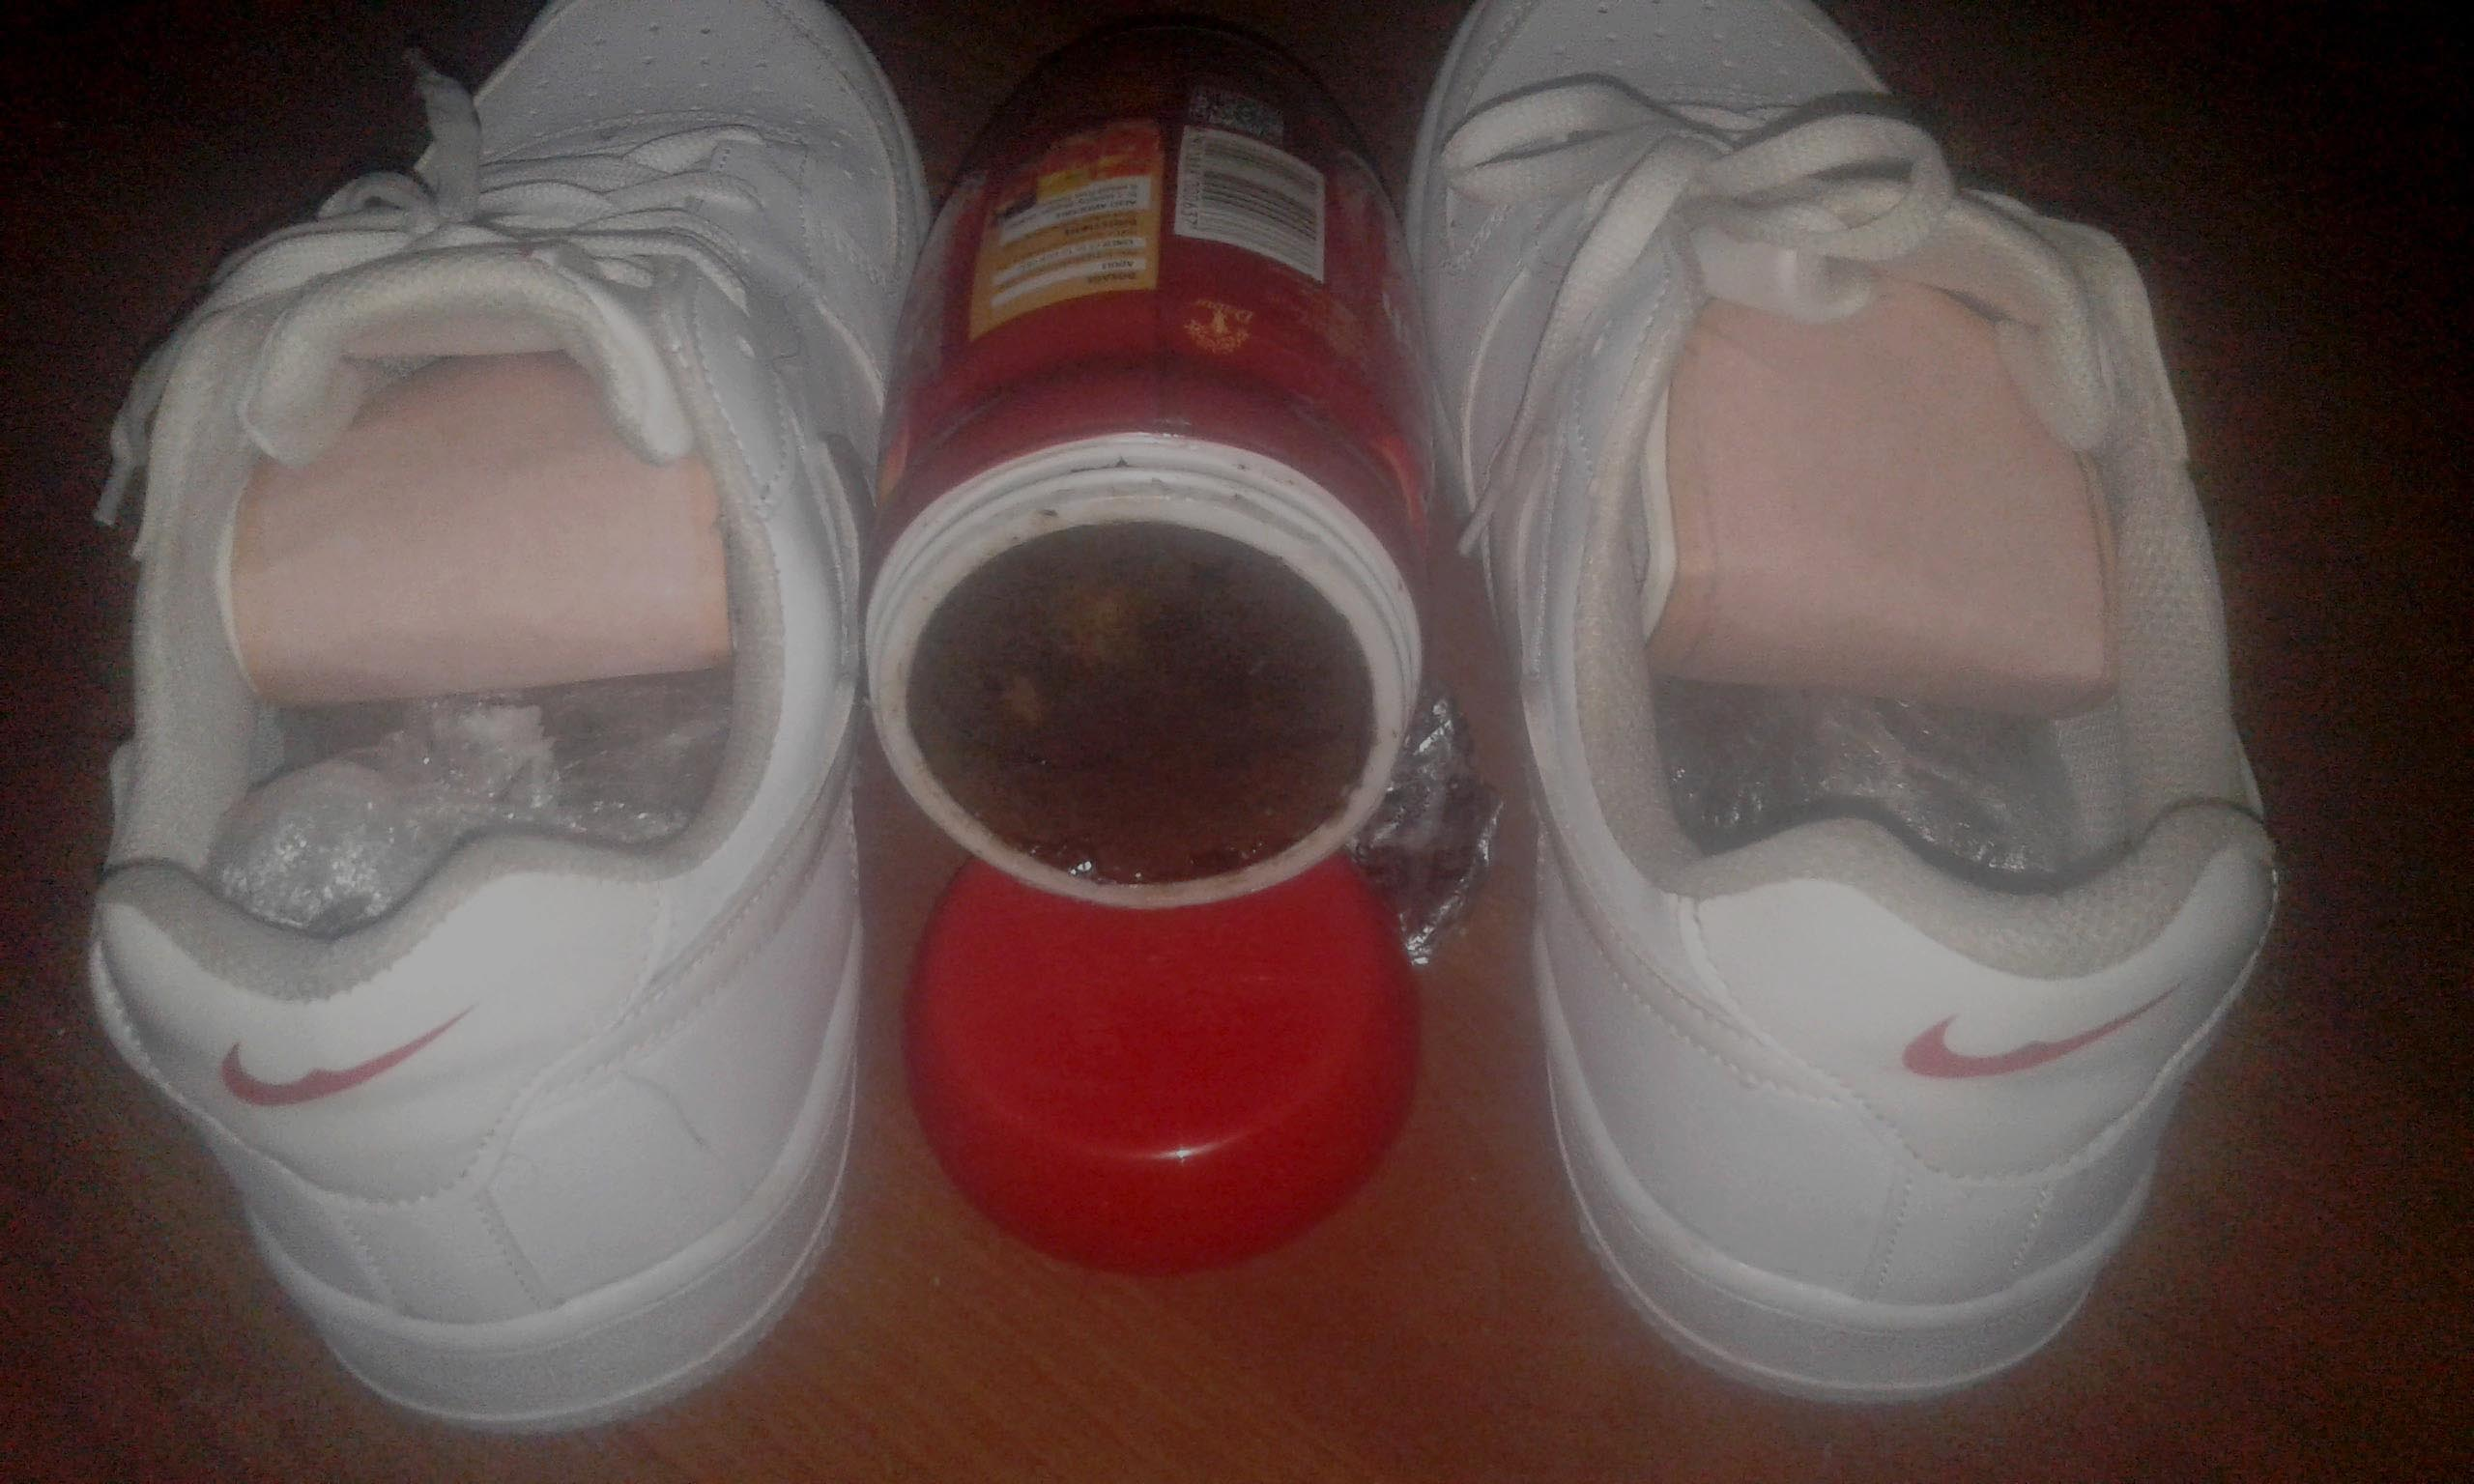 This image displays hashish hidden in a pair of 'Stylish' brand sneakers and other portion of the drug filled in a jar of Dabur Chyawanprash, an ayurvedic medicine, in Kathmandu, on Tuesday, November 8, 2017. A Ukrainian national Oleksii Lolenko (42) was arrested in possession of the drug from Tribhuvan International Airport on Tuesday. Photo: NCB Nepal